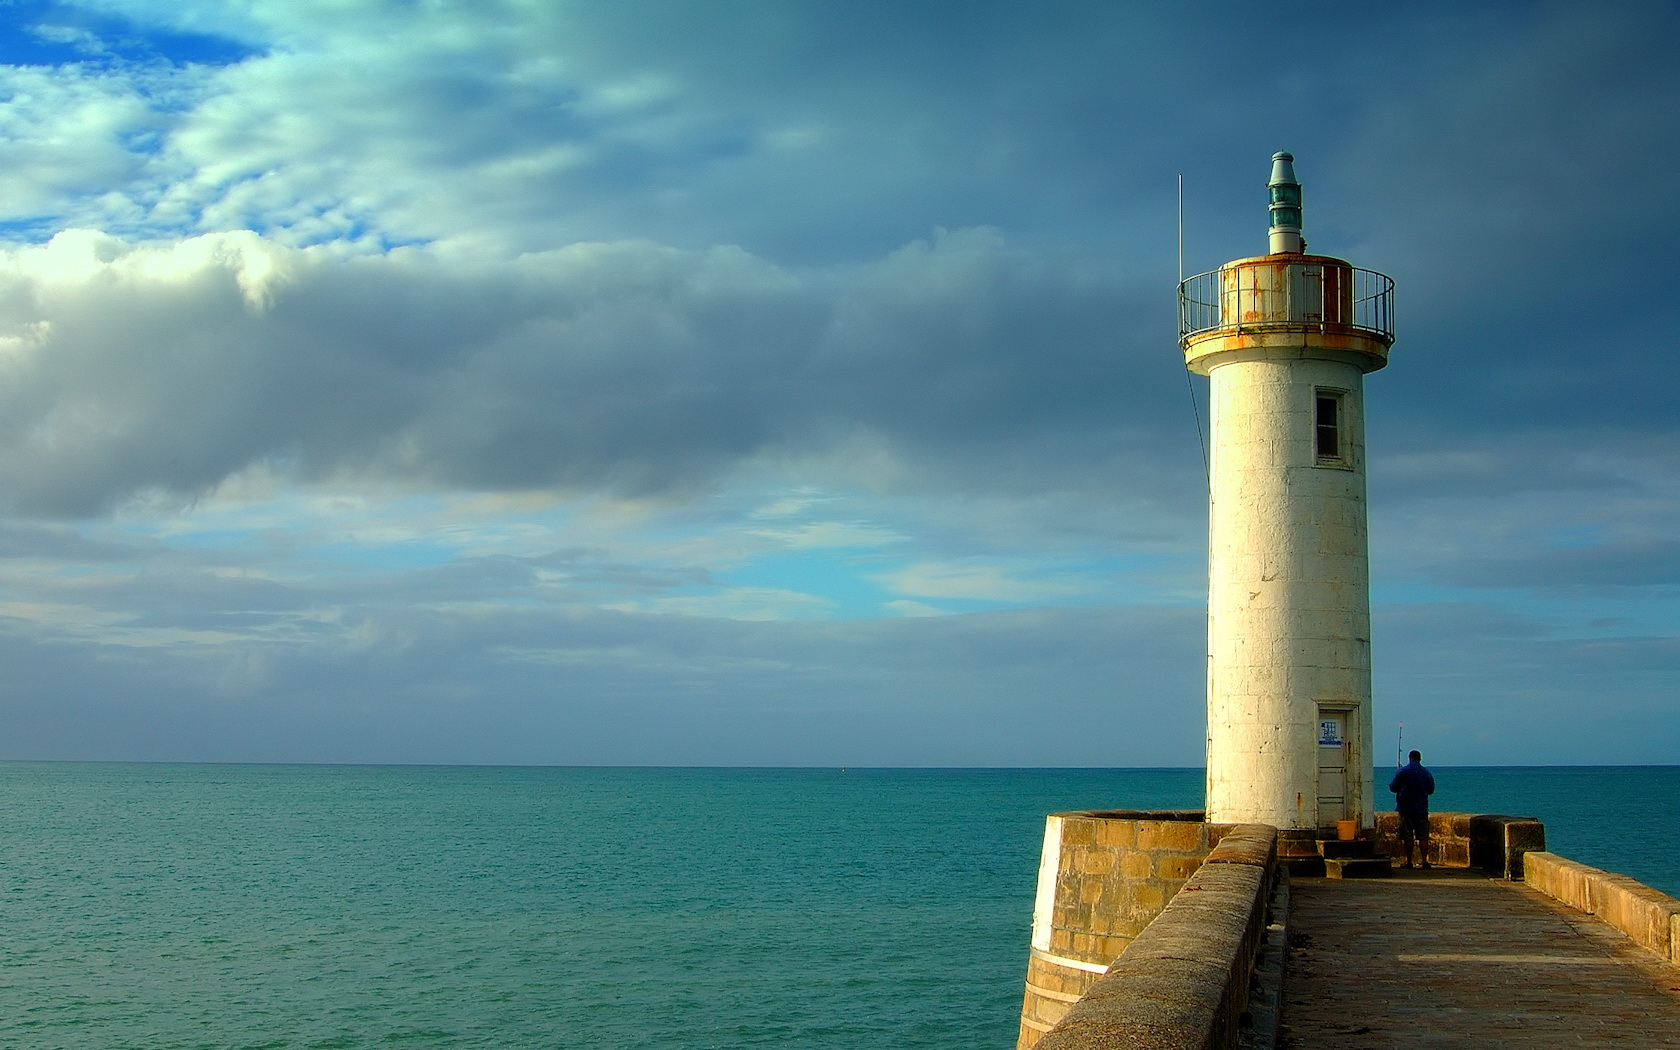 Lighthouse on the coast Wallpaper Wallpaper Collective 1680x1050